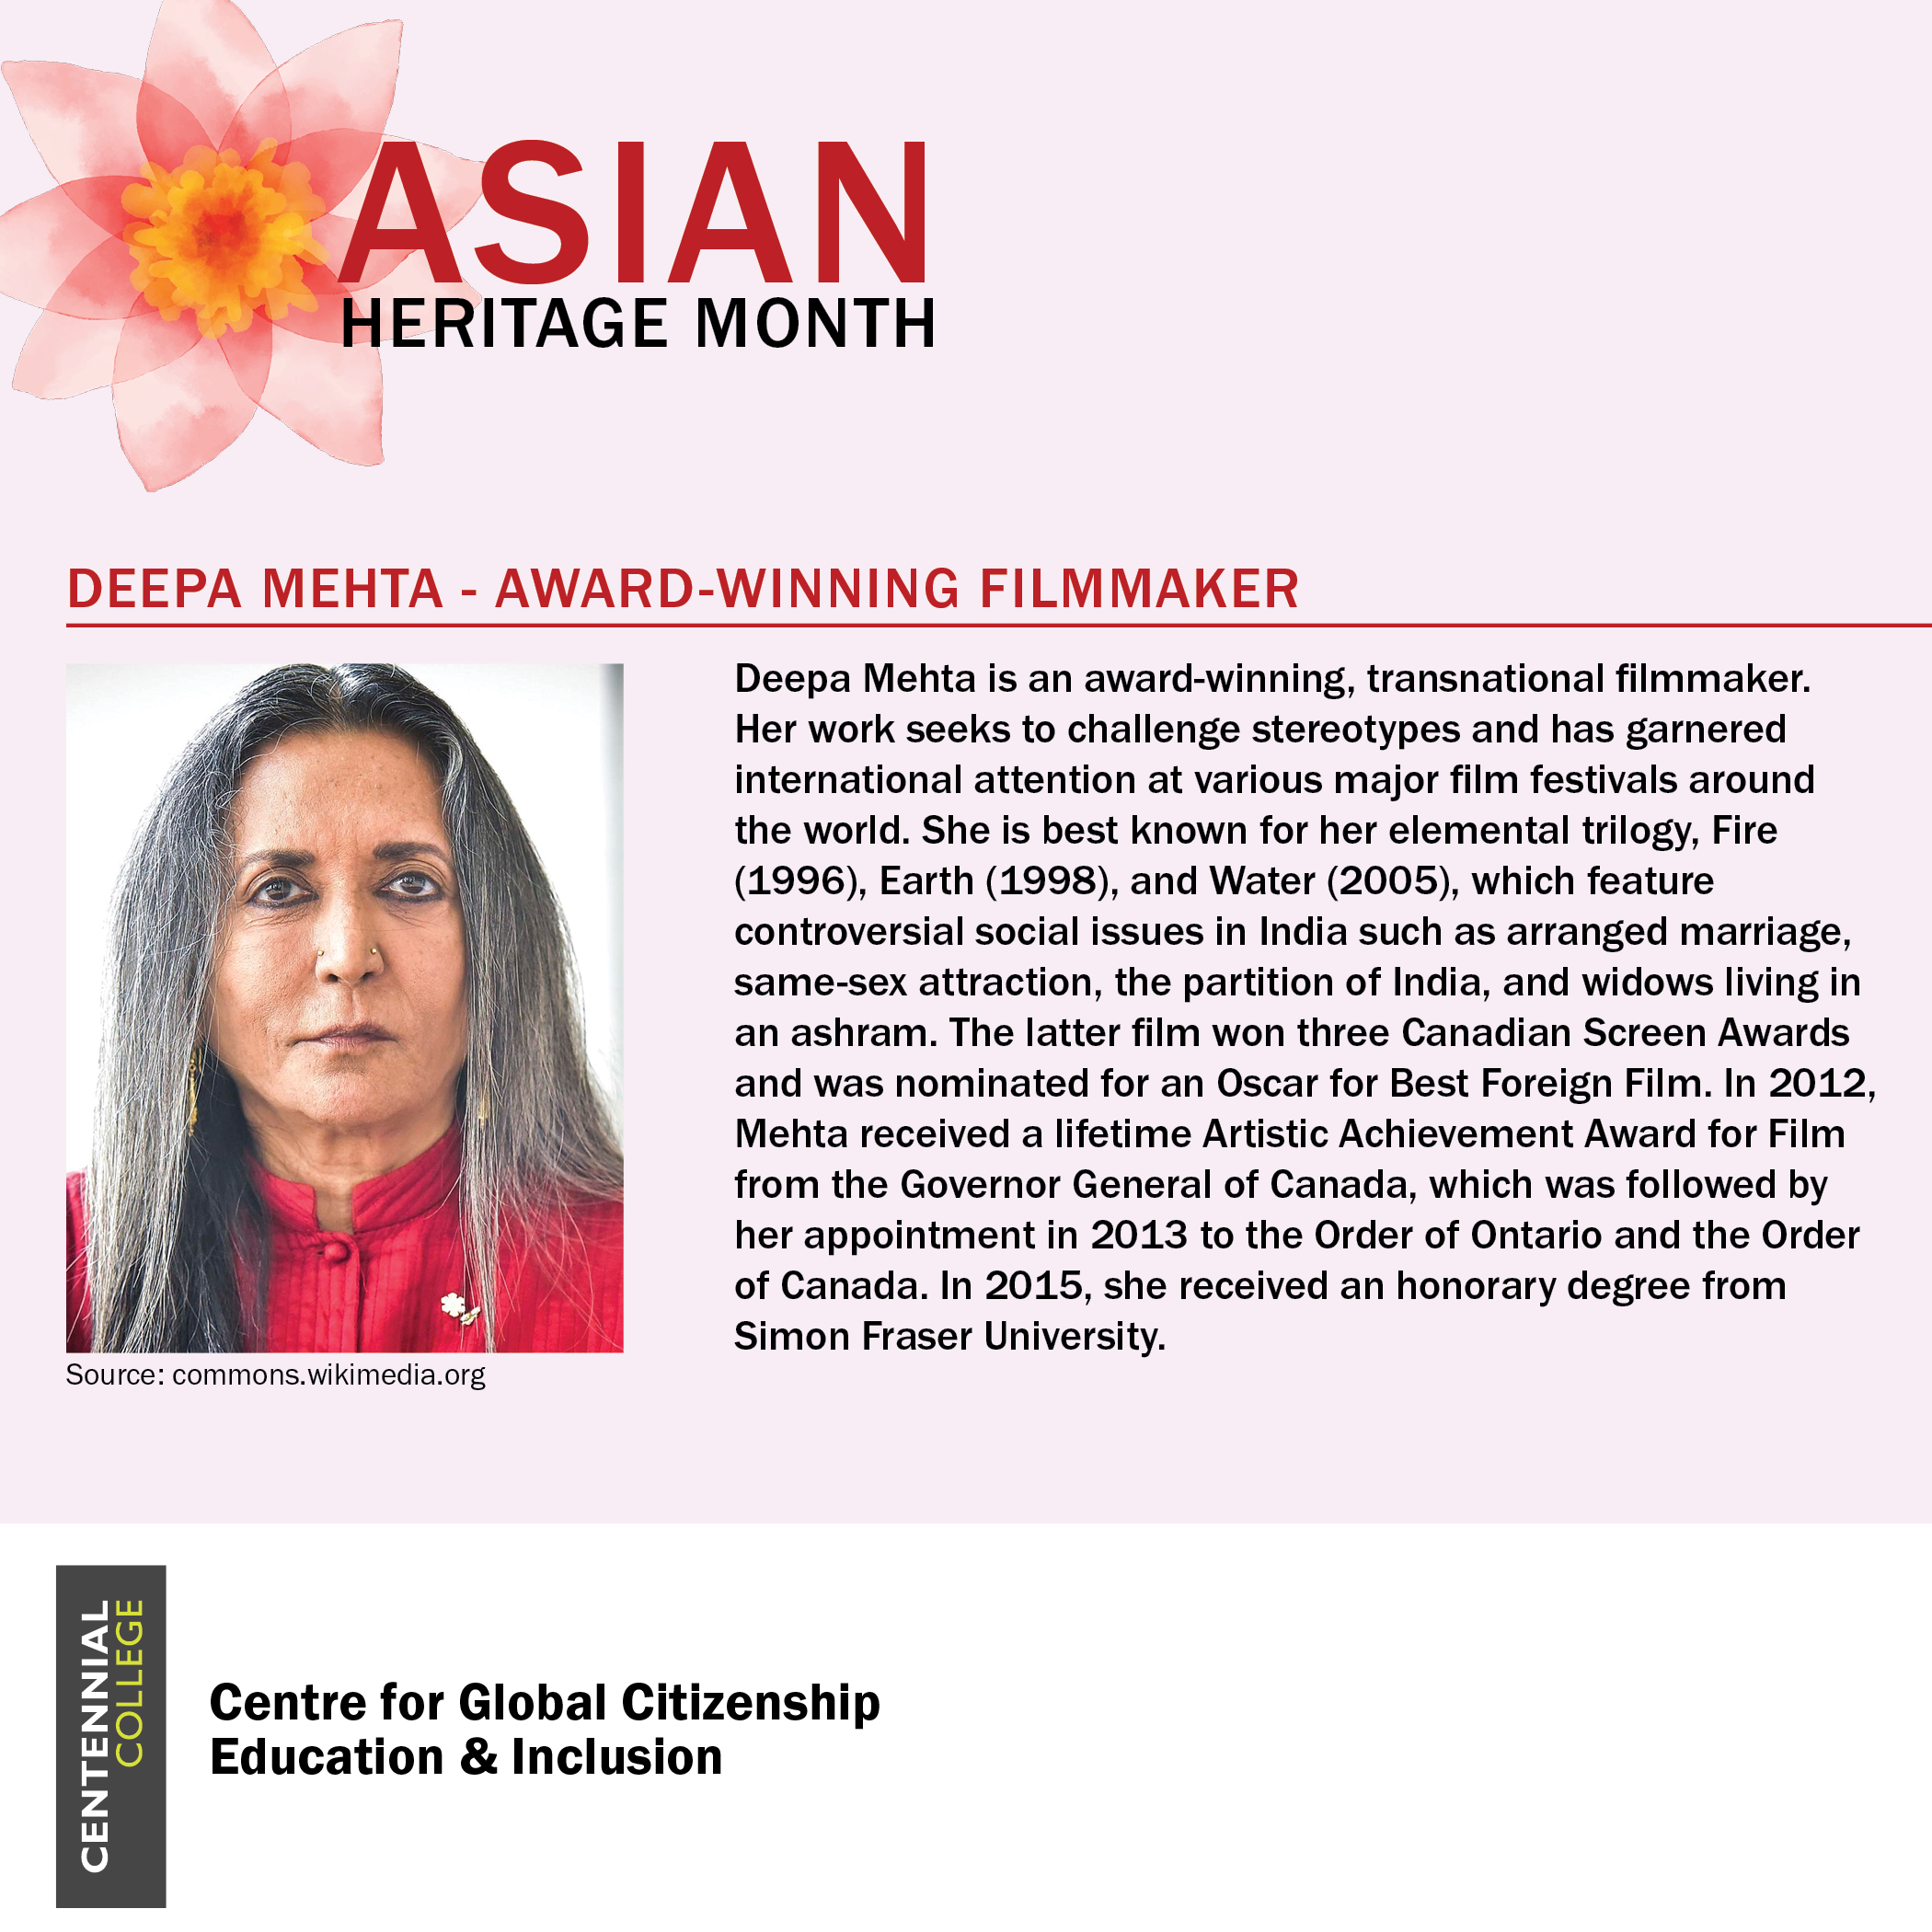 Asian Heritage Month spotlight on Deepa Mehta - Award-winning filmmaker. There is a photo of Deepa Mehta accompanied by the following text: Deepa Mehta is an award-winning, transnational filmmaker. Her work seeks to challenge stereotypes and has garnered International attention at various major film festivals around the world. She is best known for her elemental trilogy, Fire (1996), Earth (1998), and Water (2005), which feature controversial social issues in India such as arranged marriage, same-sex attraction, the partition of India, and widows living in an ashram. The latter film won three Canadian Screen Awards and was nominated for an Oscar for Best Foreign Film. In 2012, Mehta received a lifetime Artistic Achievement Award for Film from the Governor General of Candada, which was followed by her appointment in 2013 to the Order of Ontario and the Order of Canada. In 2015, she received an honorary degree from Simon Fraser University.